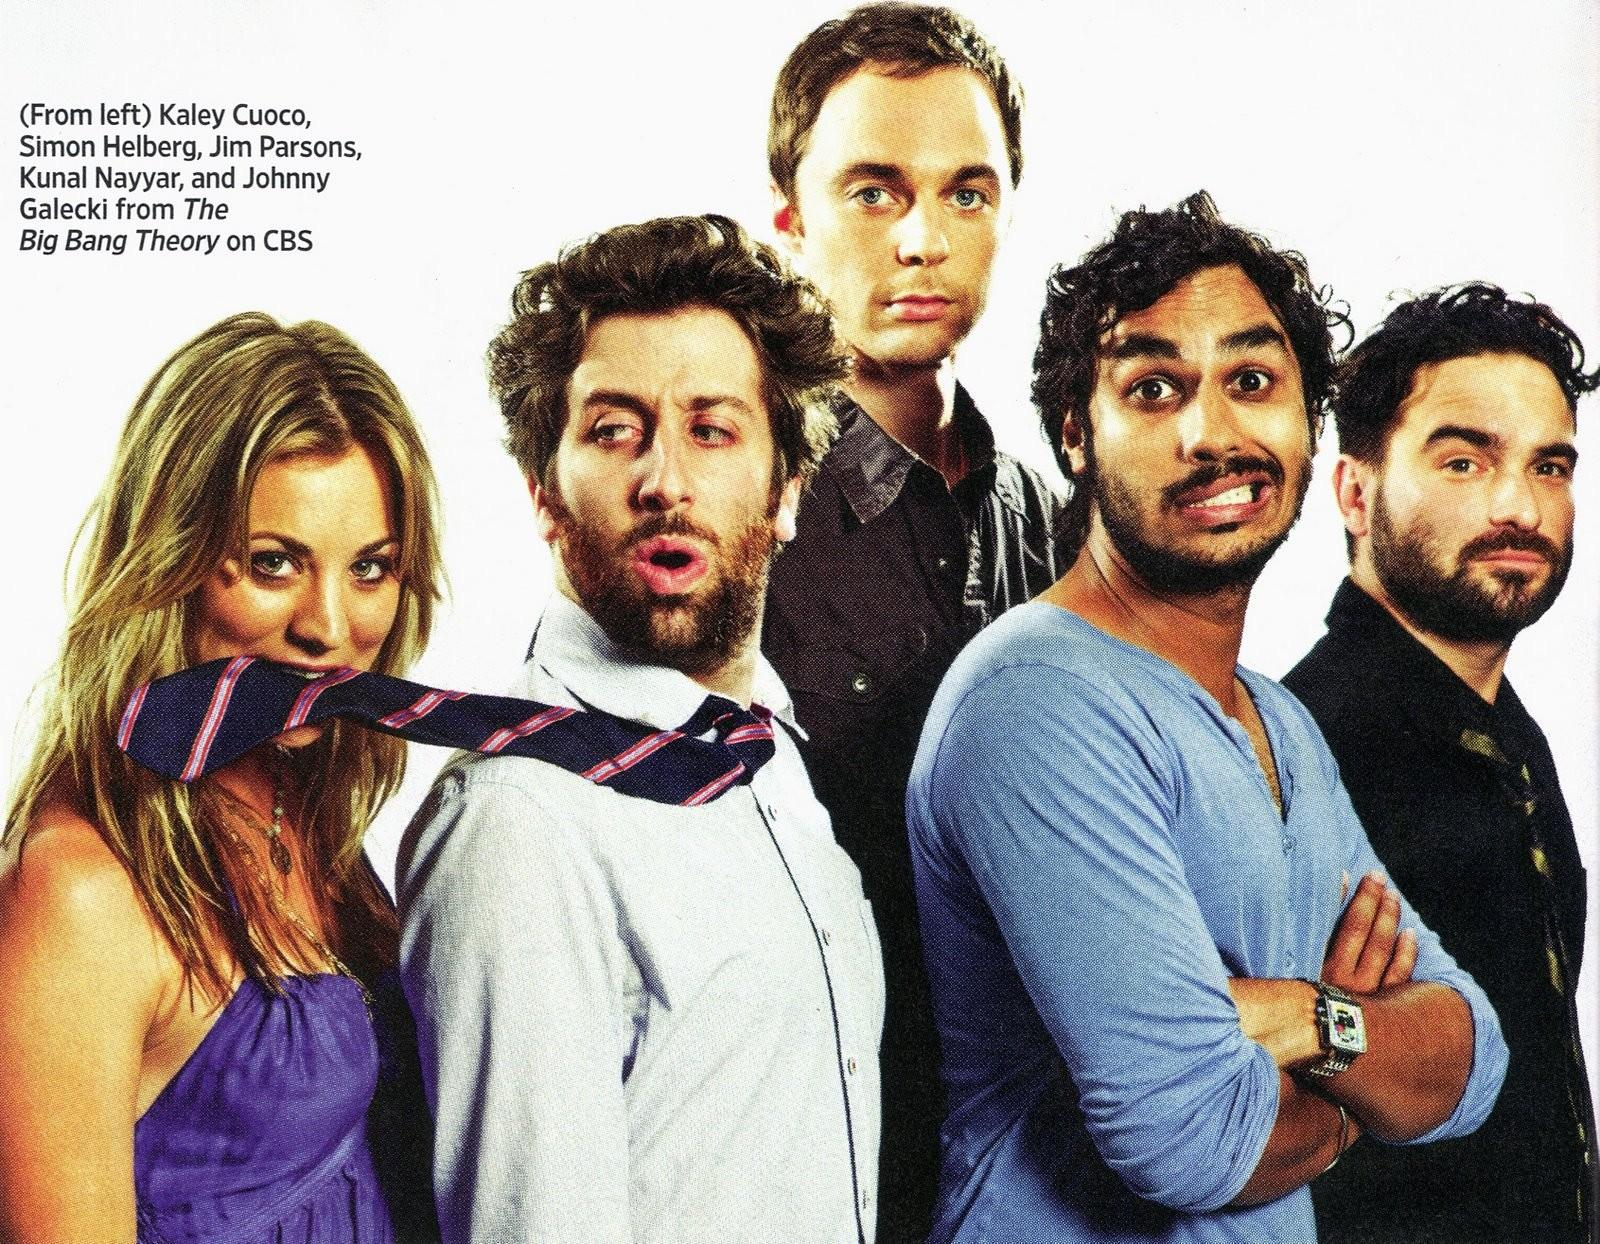 http://4.bp.blogspot.com/-lOnuCpChx70/Tw2kECiQ_mI/AAAAAAAAC6s/ydfzmPzA6d0/s1600/The-Big-Bang-Theory-wallpaper-731769.jpg